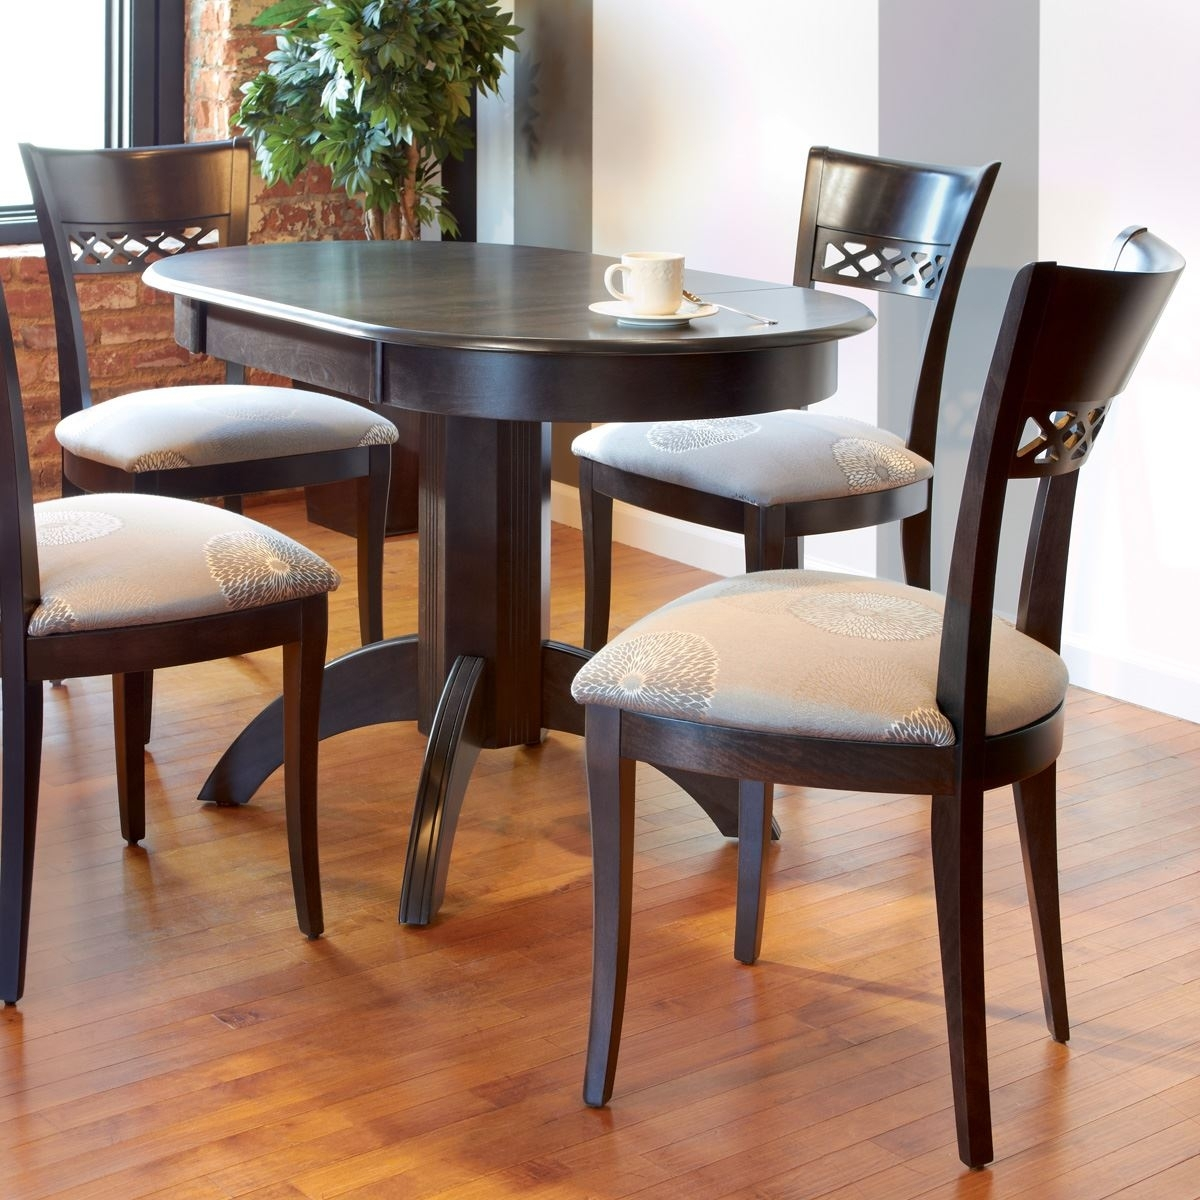 Round Wood Dining Sets | King Dinettes Pertaining To Most Popular Jefferson Extension Round Dining Tables (Image 14 of 20)